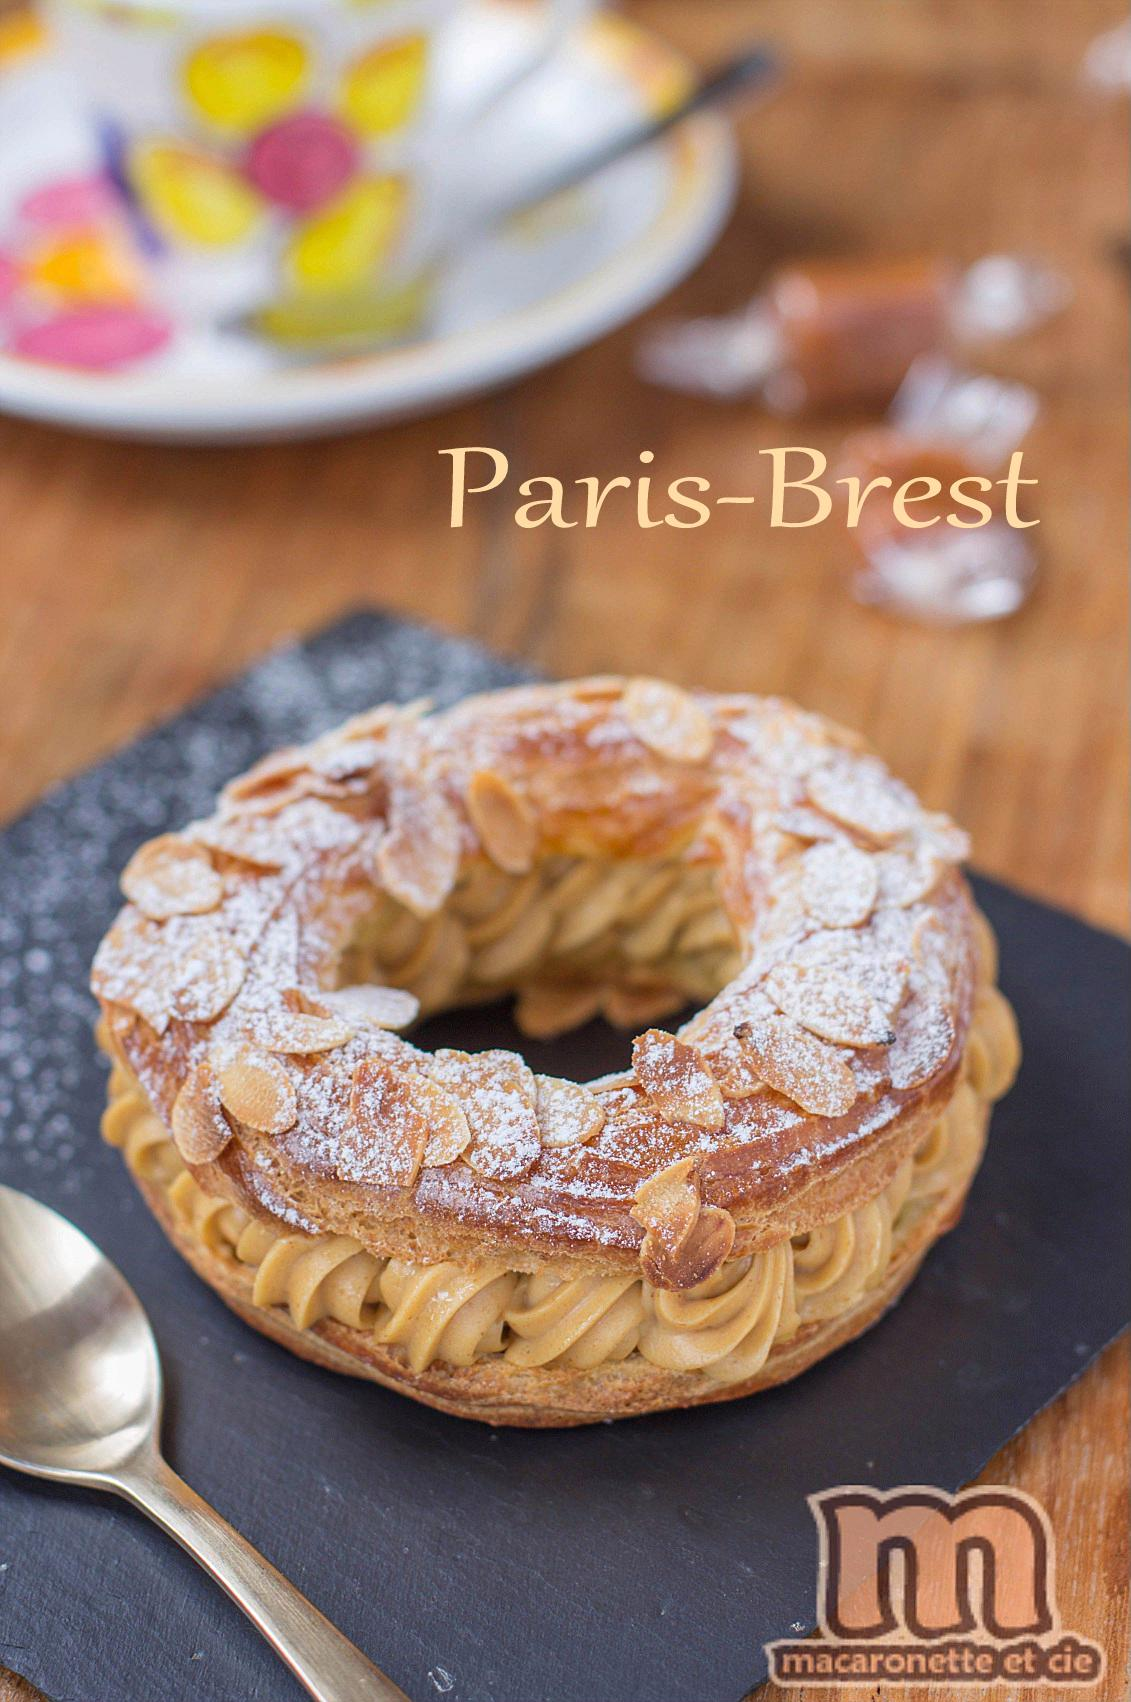 calories gateau paris brest les recettes les plus populaires de g teaux en europe. Black Bedroom Furniture Sets. Home Design Ideas